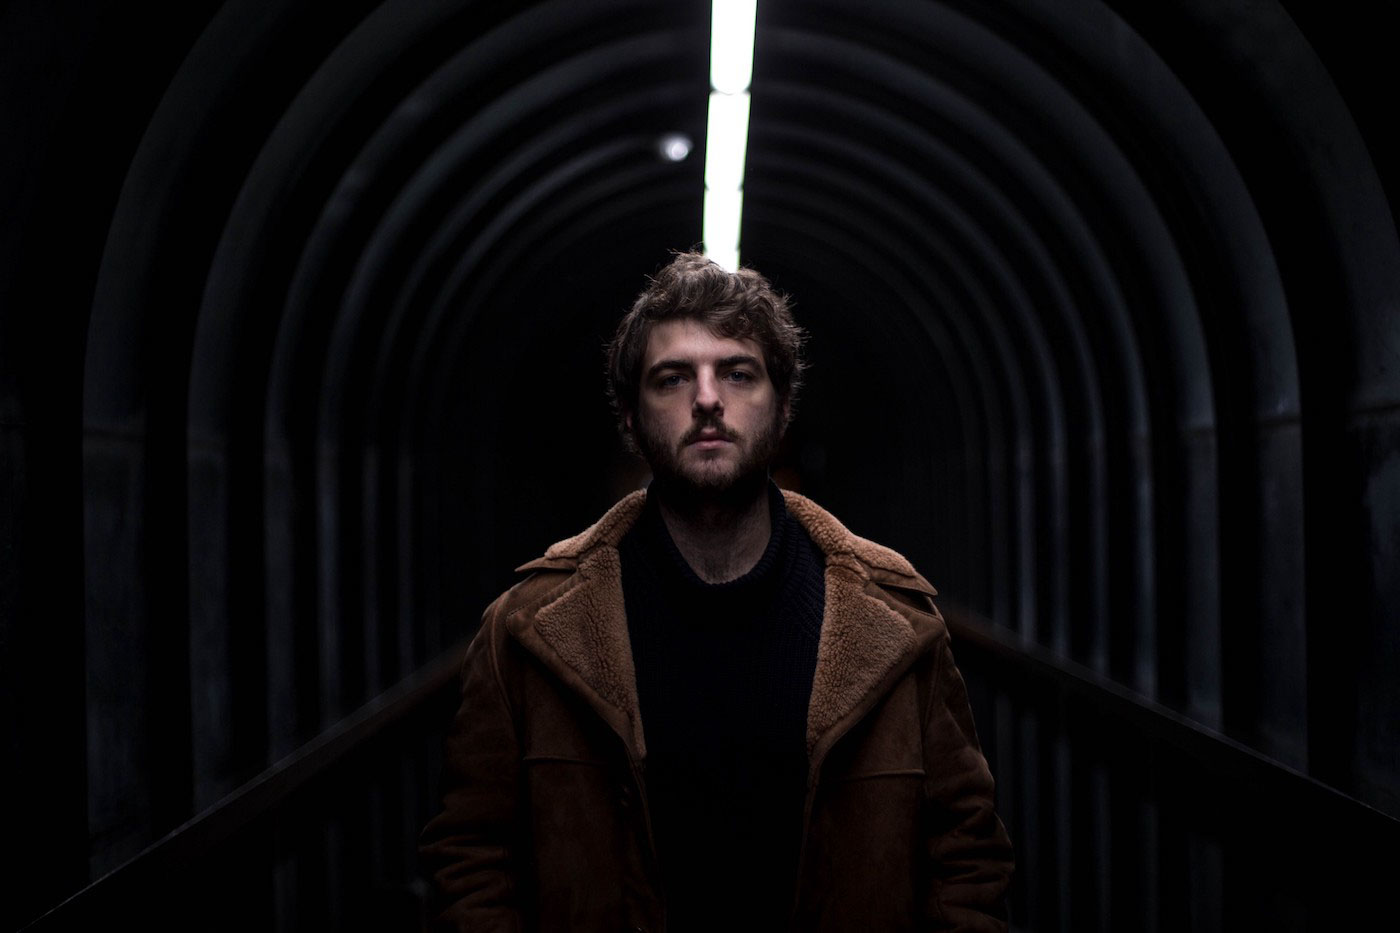 Portrait of a filmmaker and photographer, Jon Victor Lara, in a corridor with one neon strip light above his head, at the Barbican Centre, London, UK.